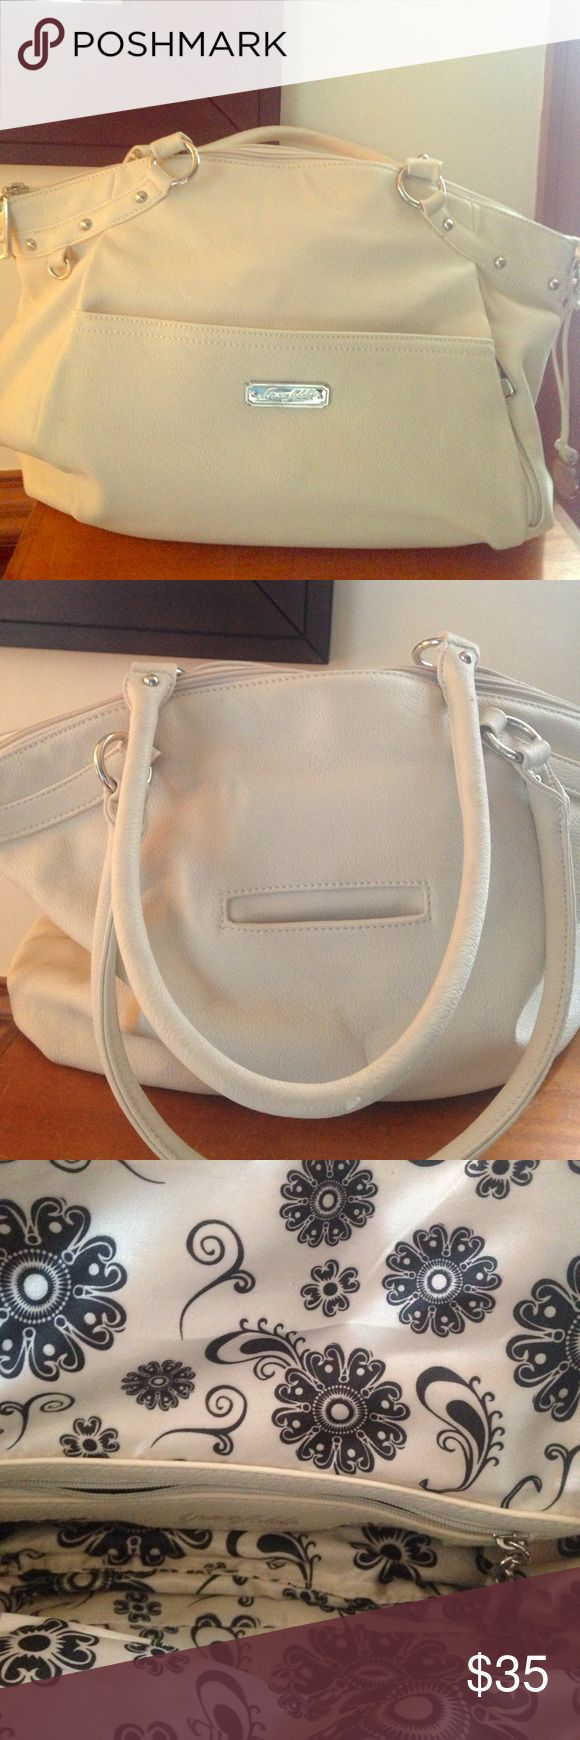 Grace Adele Satchel Cream Grace Adele Satchel with Silver toned accents. Black and white paisley inside. Normal Wear on straps but in In great condition Grace Adele Bags Satchels